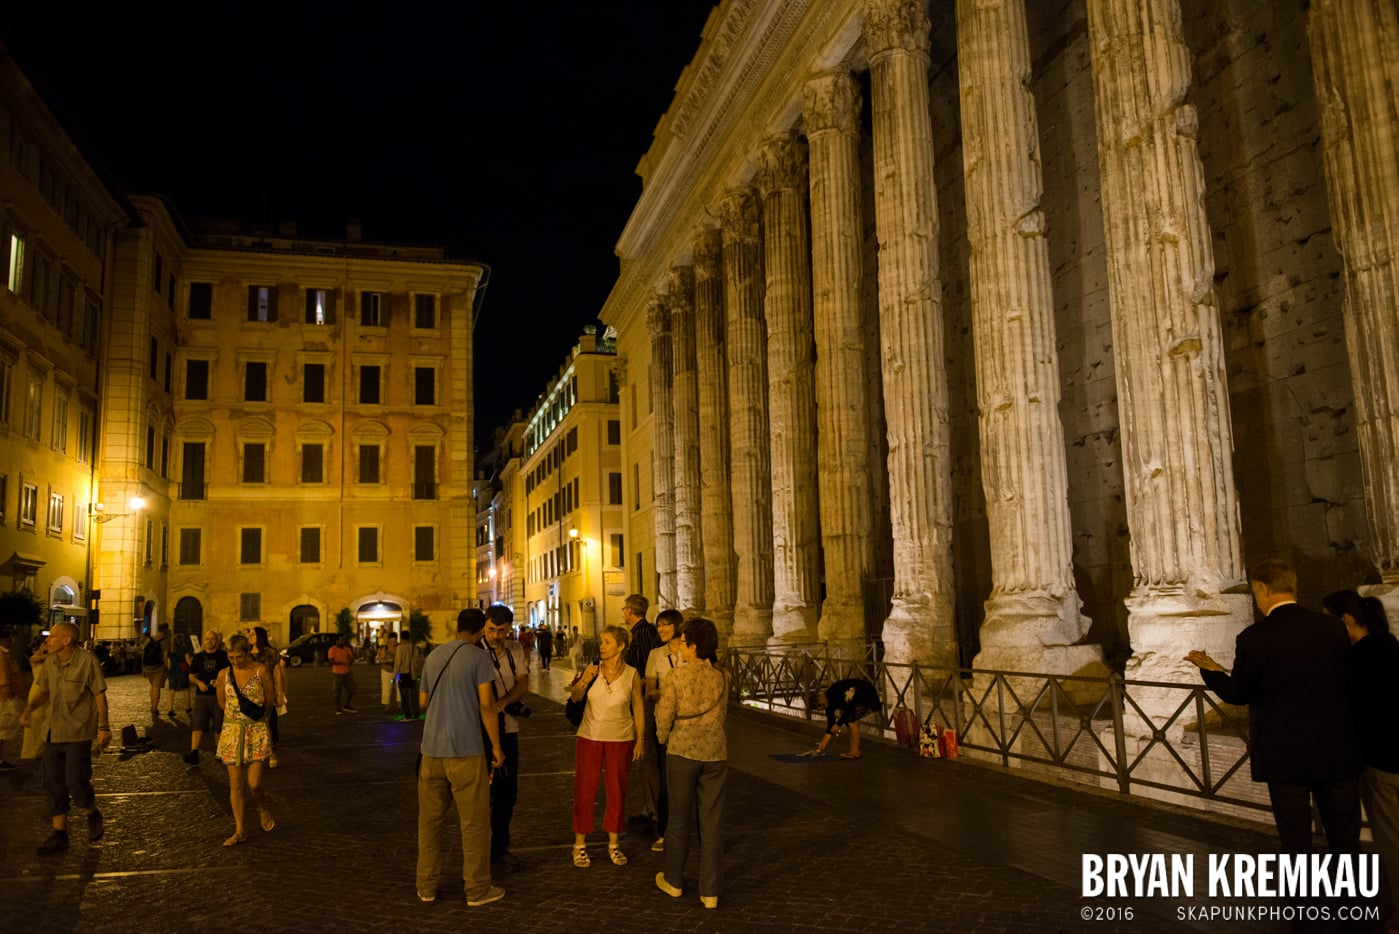 Italy Vacation - Day 1: Rome - 9.9.13 (8)